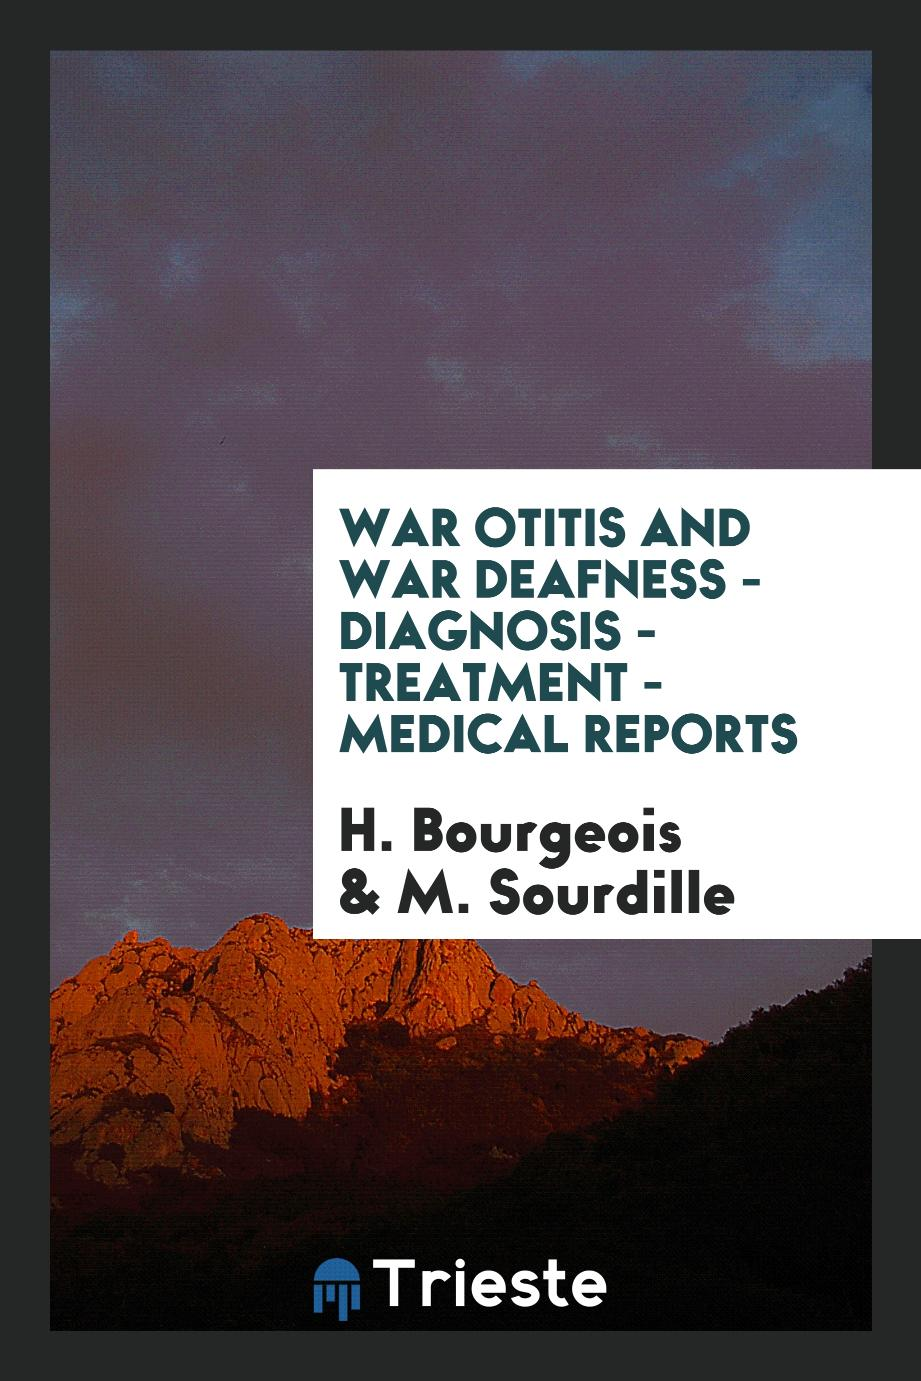 War otitis and war deafness - diagnosis - treatment - medical reports